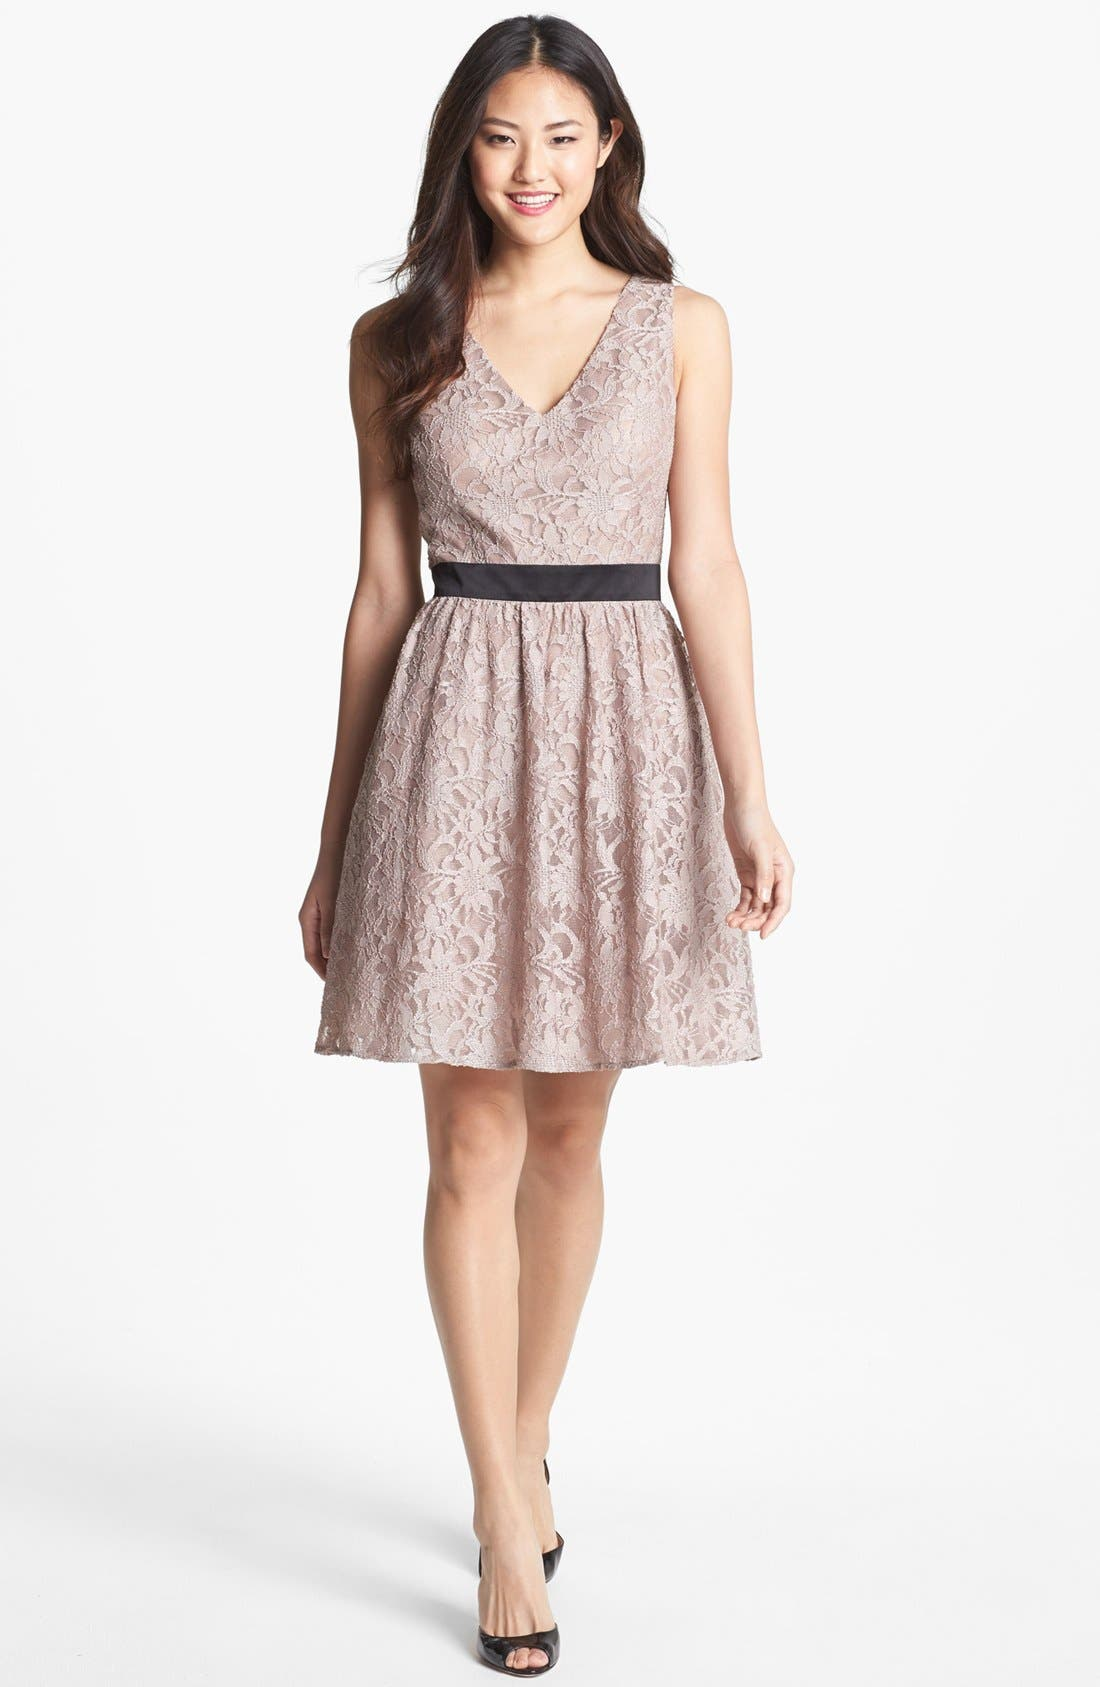 Alternate Image 1 Selected - Hailey by Adrianna Papell Lace Fit & Flare Dress (Online Only)